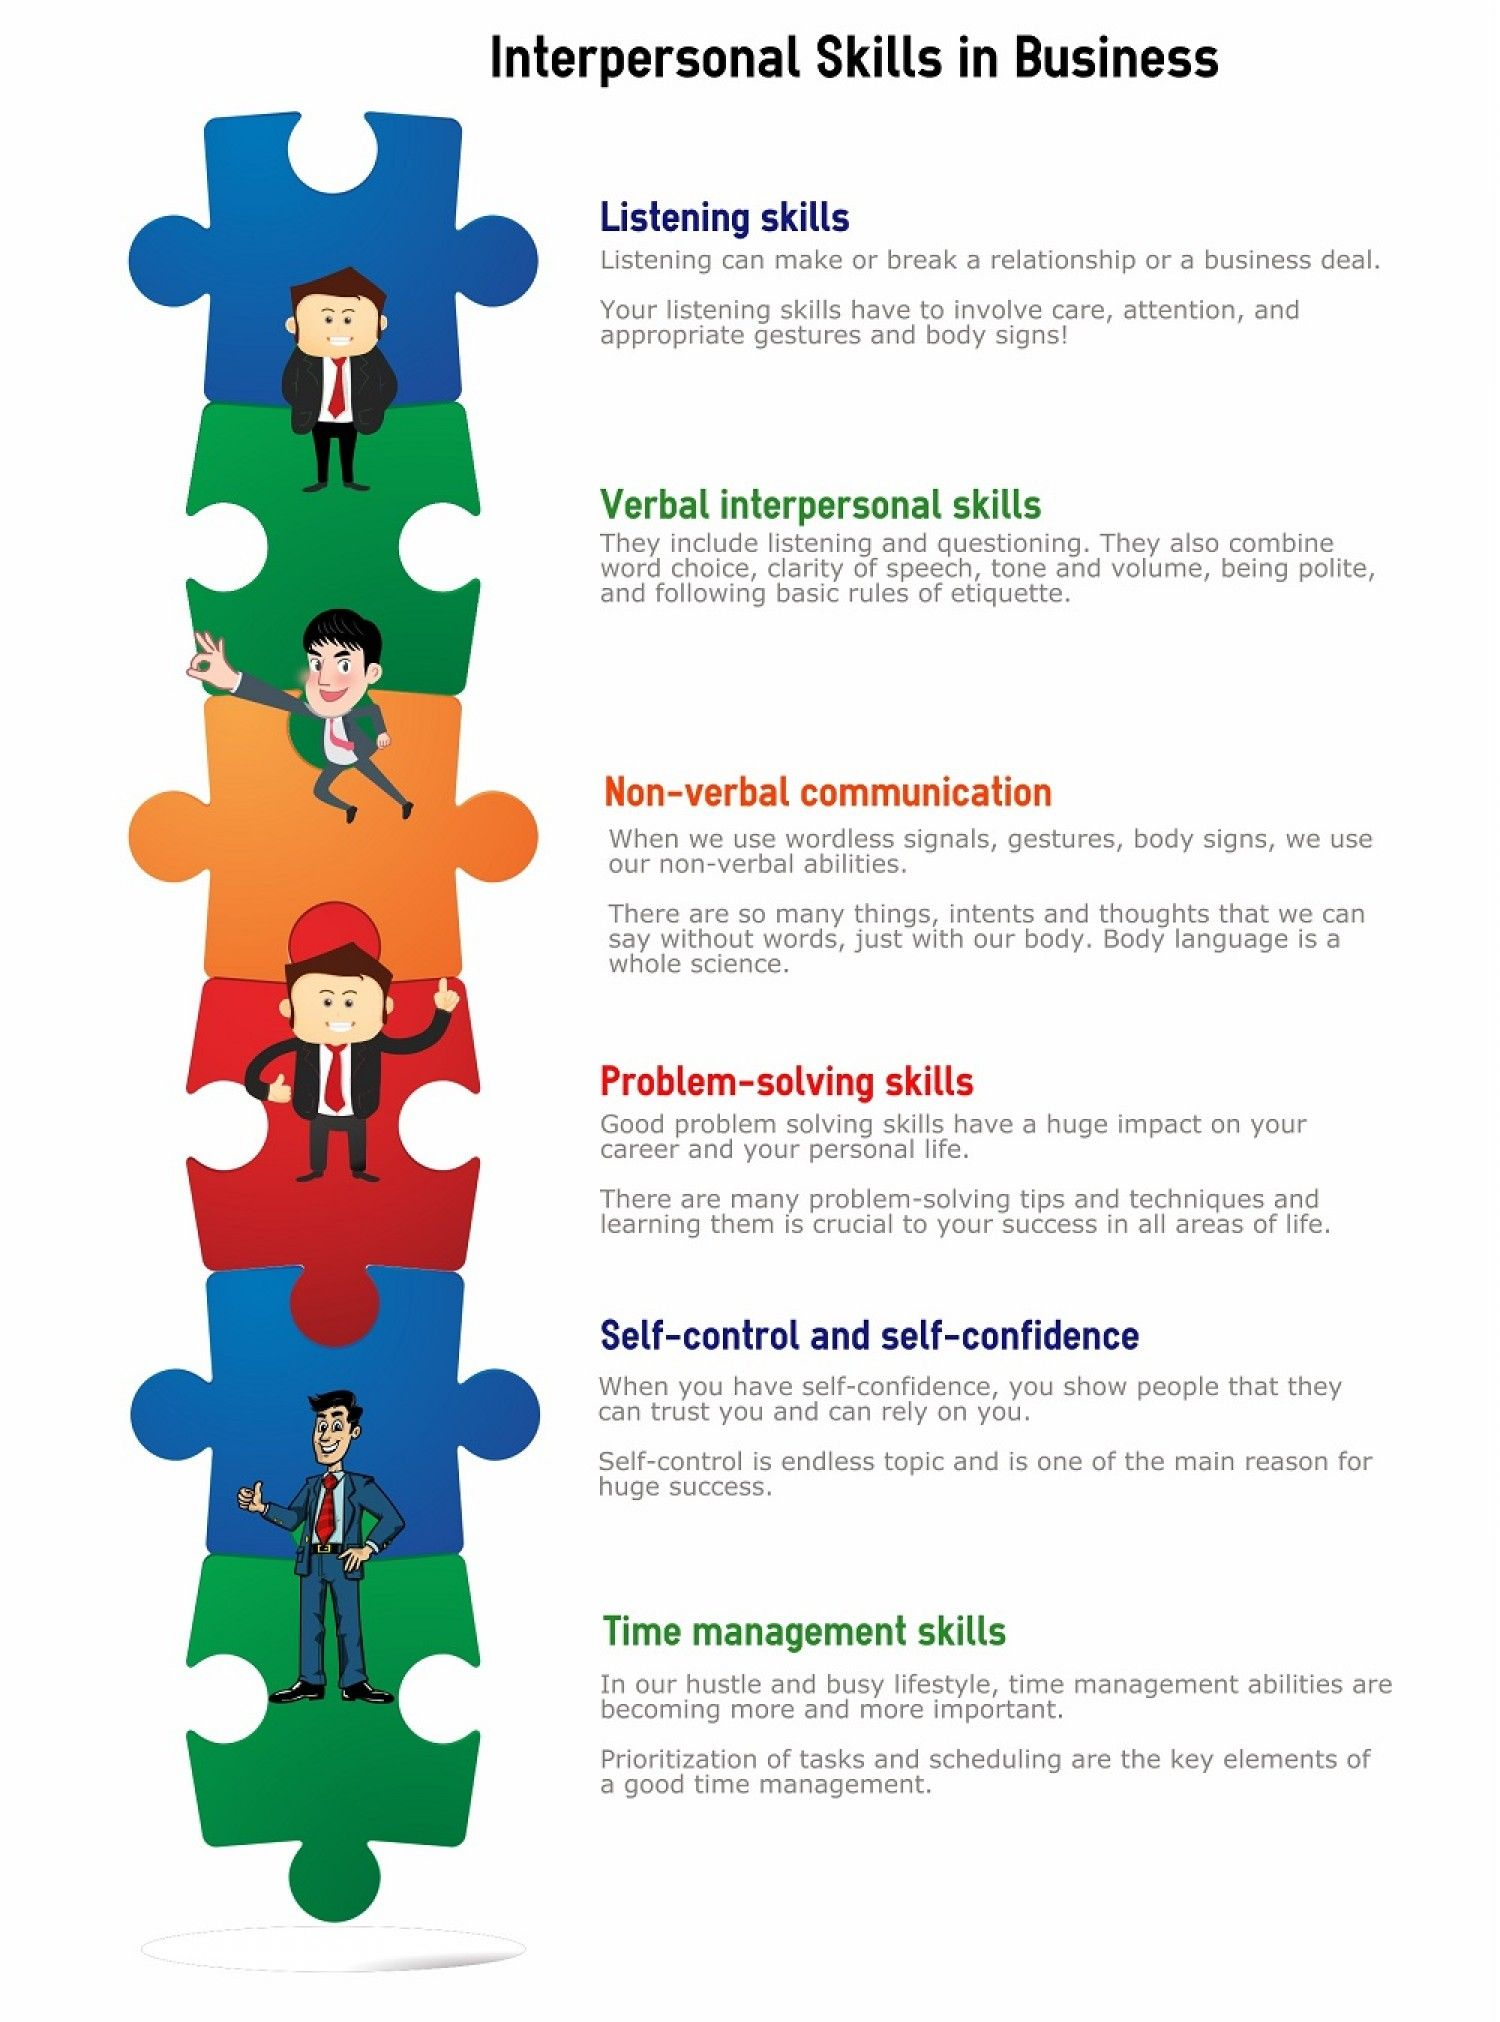 Interpersonal Skills Infographic